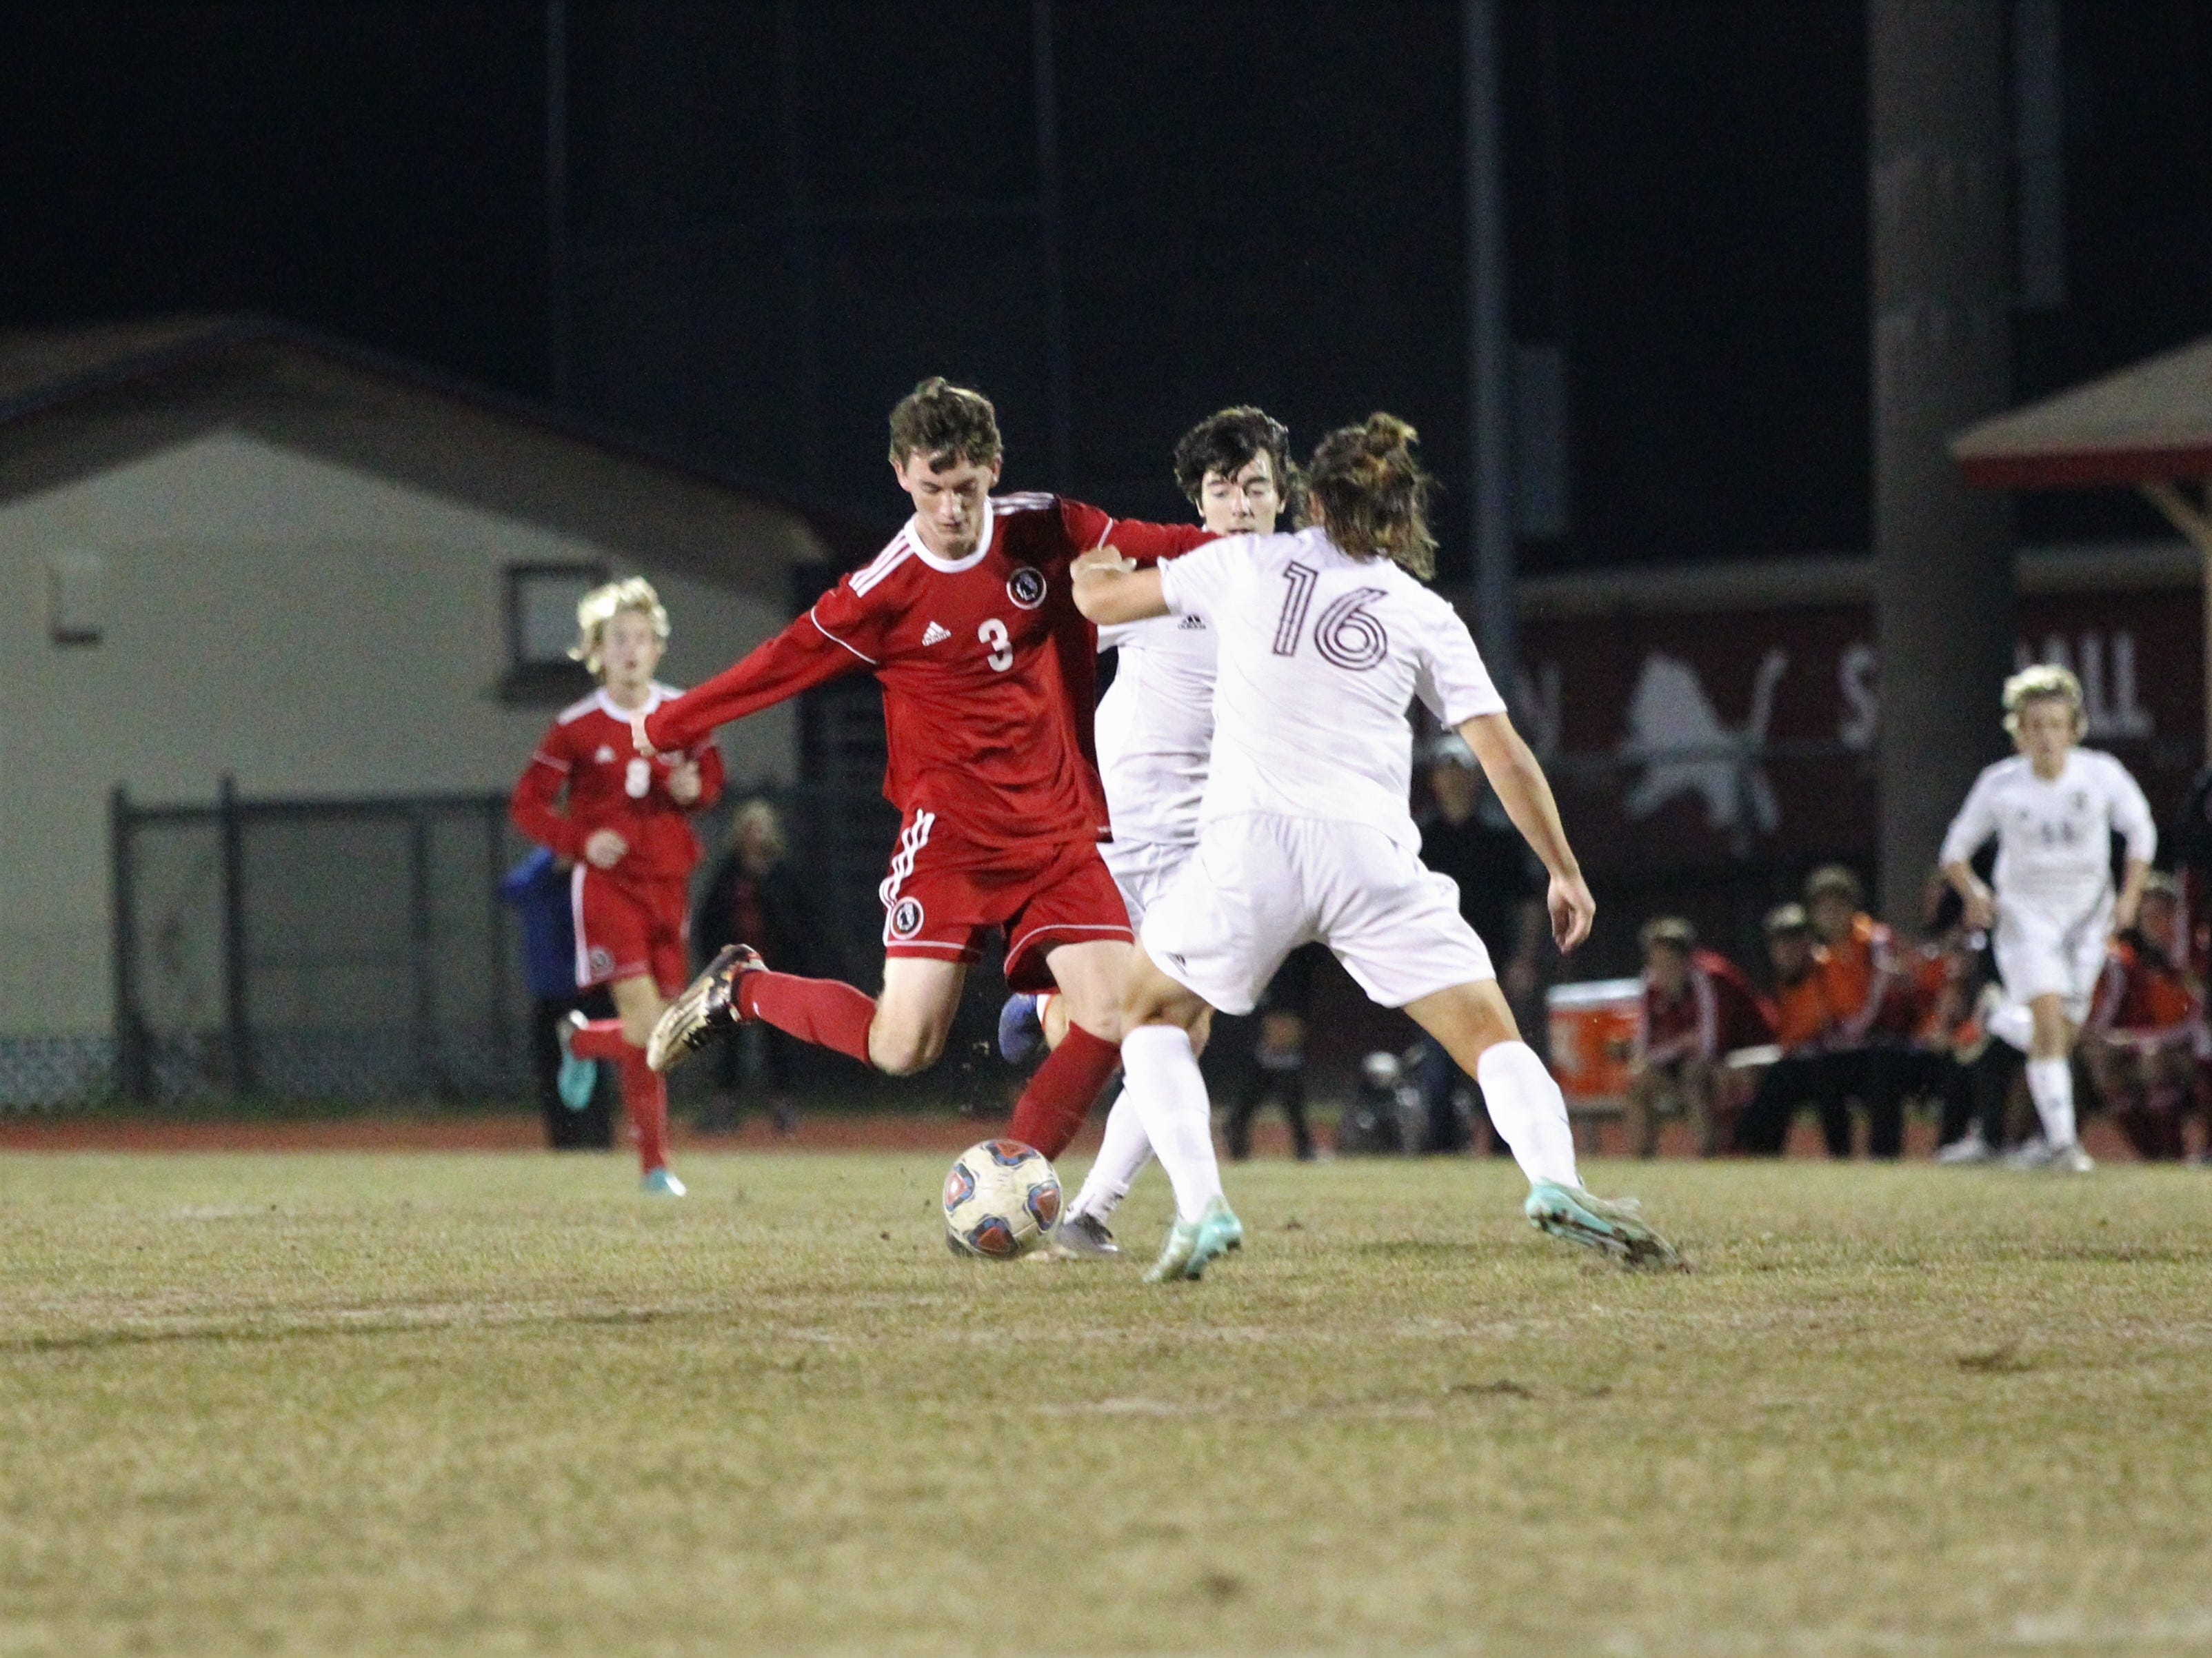 Leon's Tanner Powell passes ahead as the Lions' boys soccer team beat Niceville 1-0 in a Region 1-4A semifinal on Feb. 9, 2019.